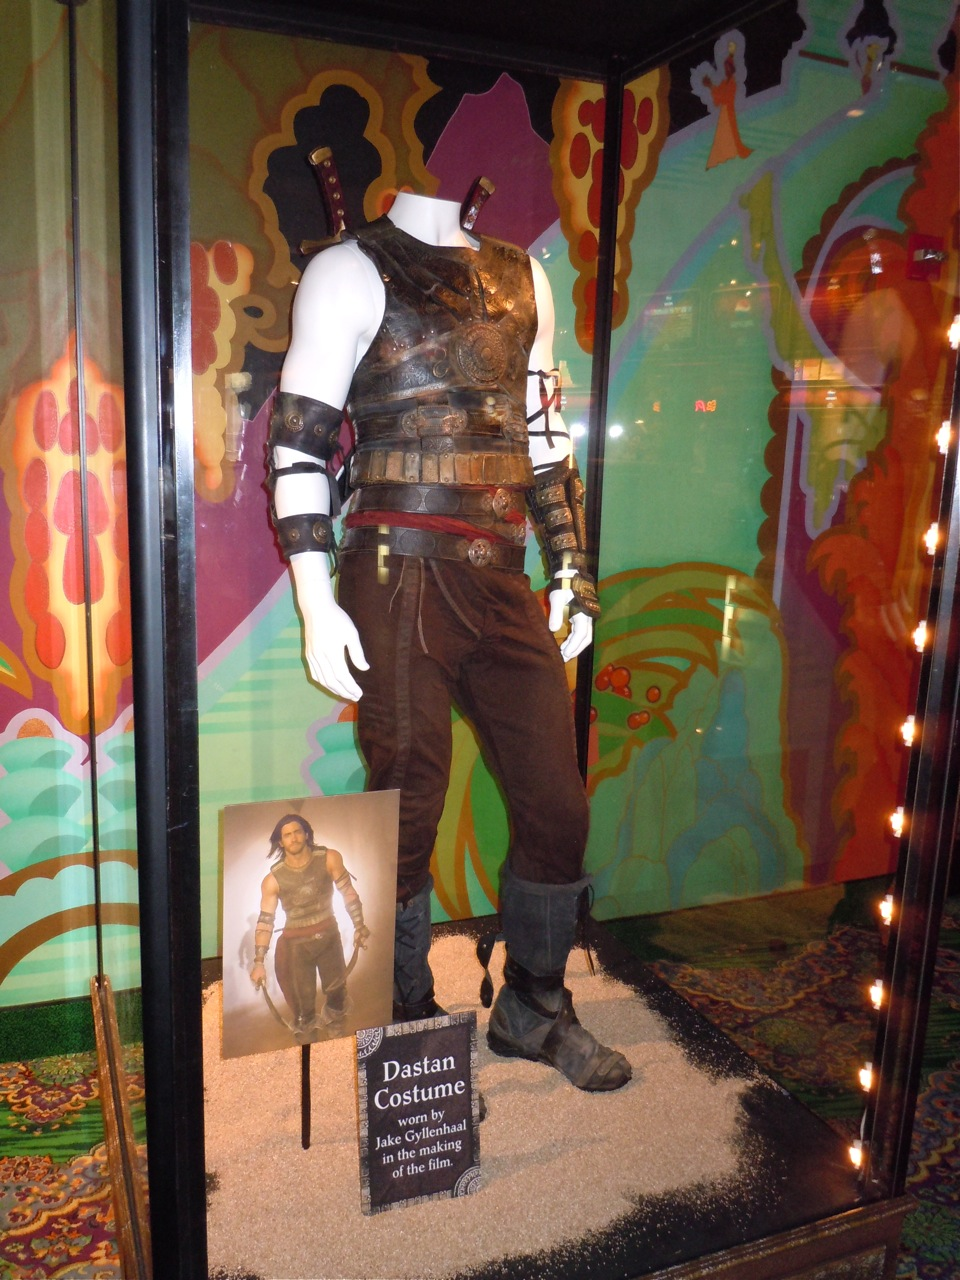 Jake Gyllenhaal's Prince of Persia movie costume ...